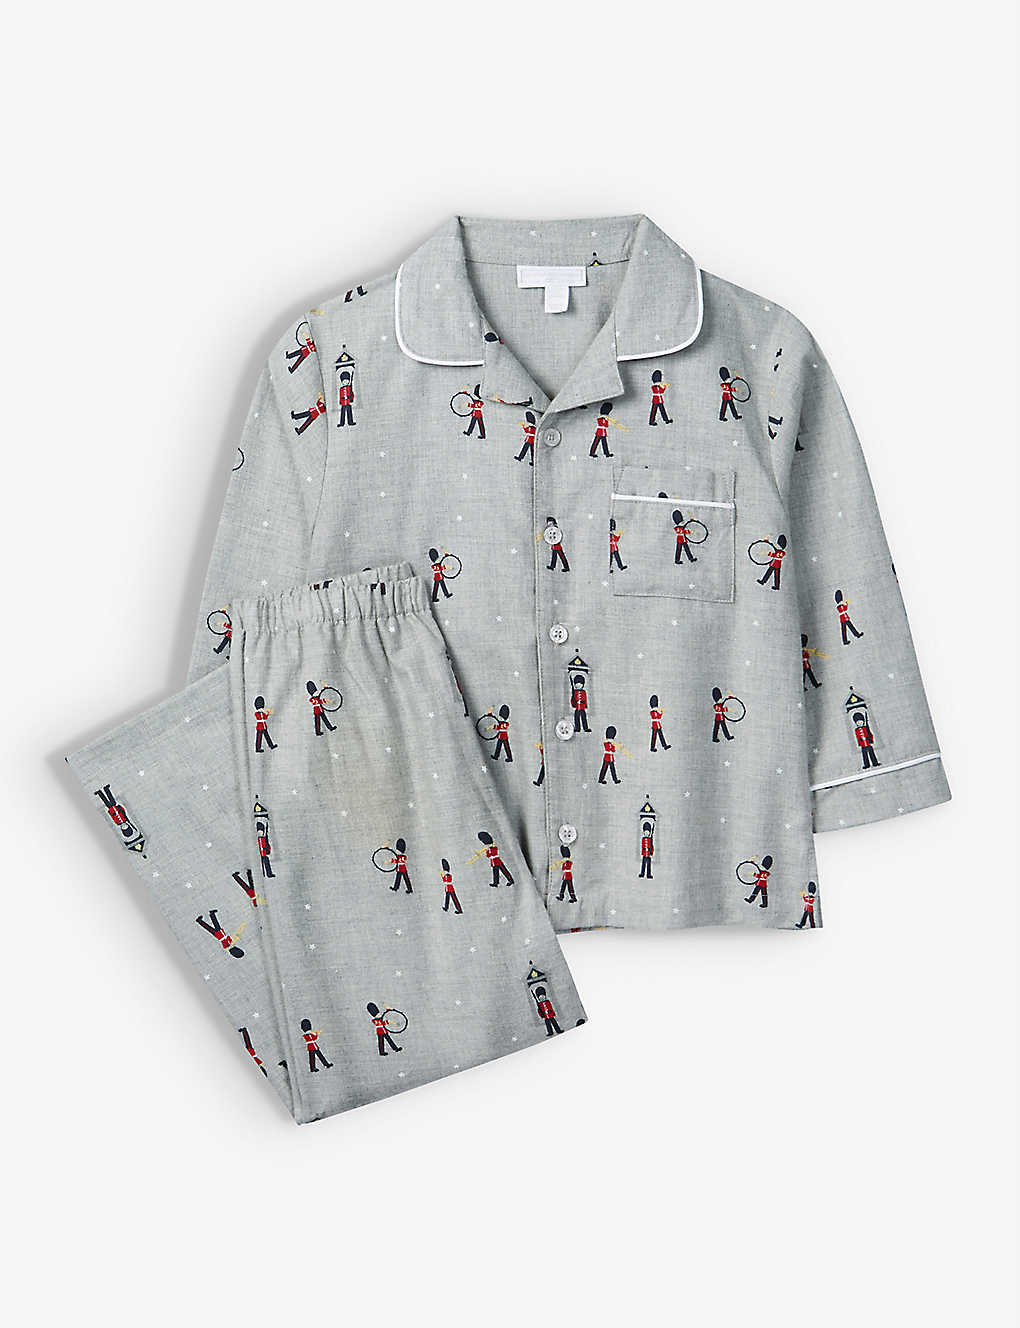 THE LITTLE WHITE COMPANY: London soldier cotton pyjamas 7-12 years